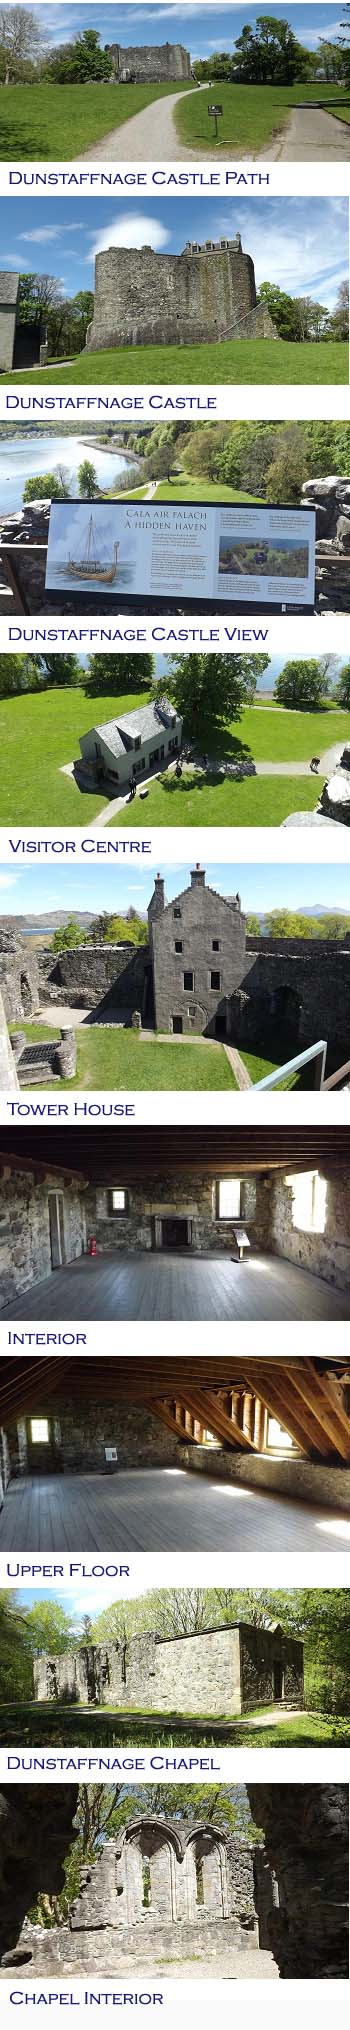 Dunstaffnage Castle Photos